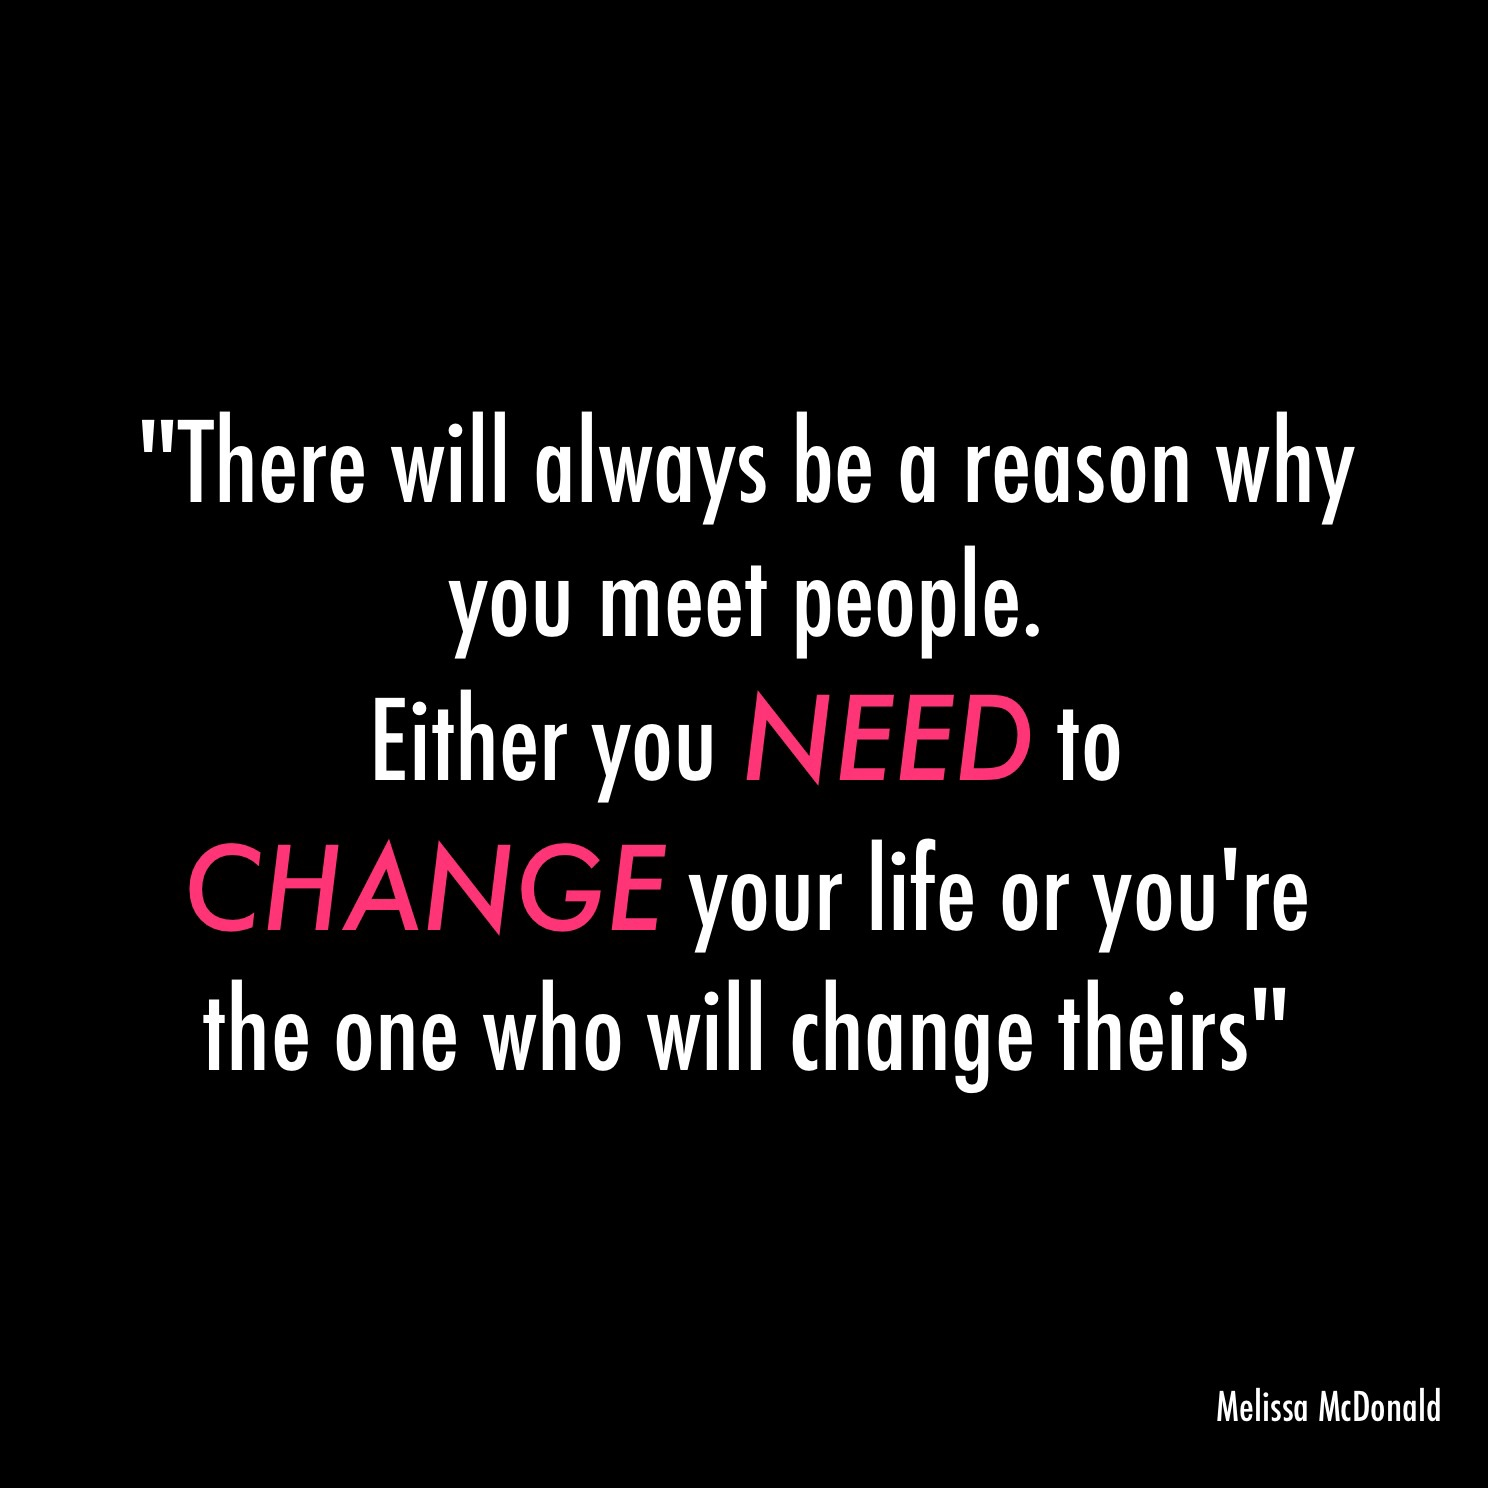 there will always be a reason you meet people melissa mcdonald be a reason why you will meet people either you need to change your life or you re the one who will change theirs please feel to leave comments